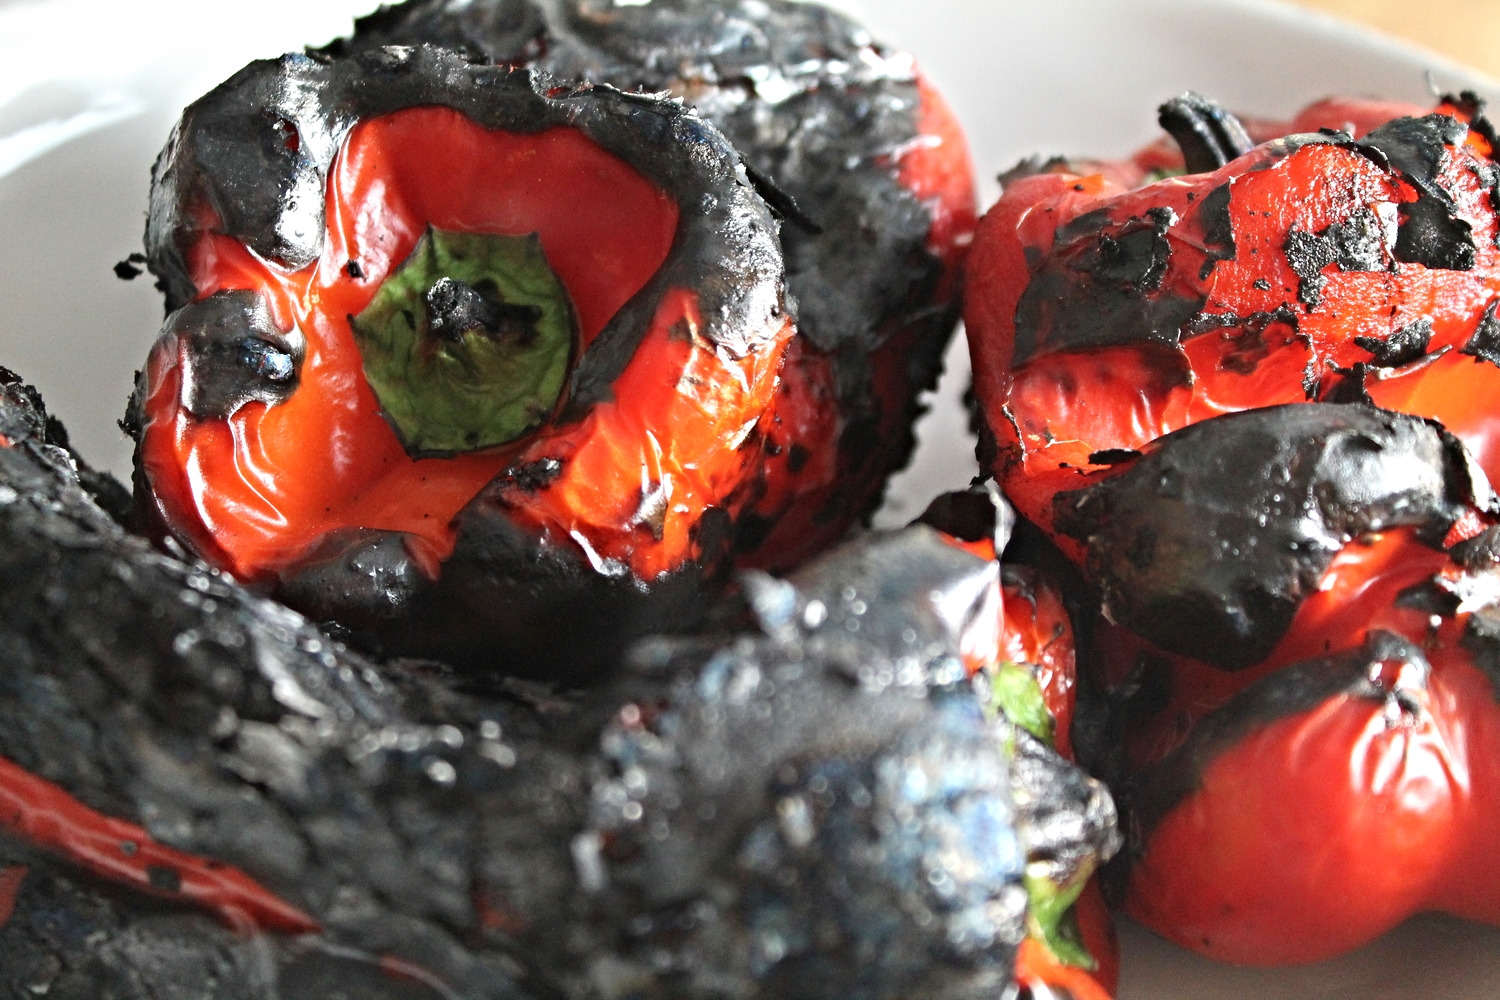 Roasted Red Peppers | www.hungryinglove.com